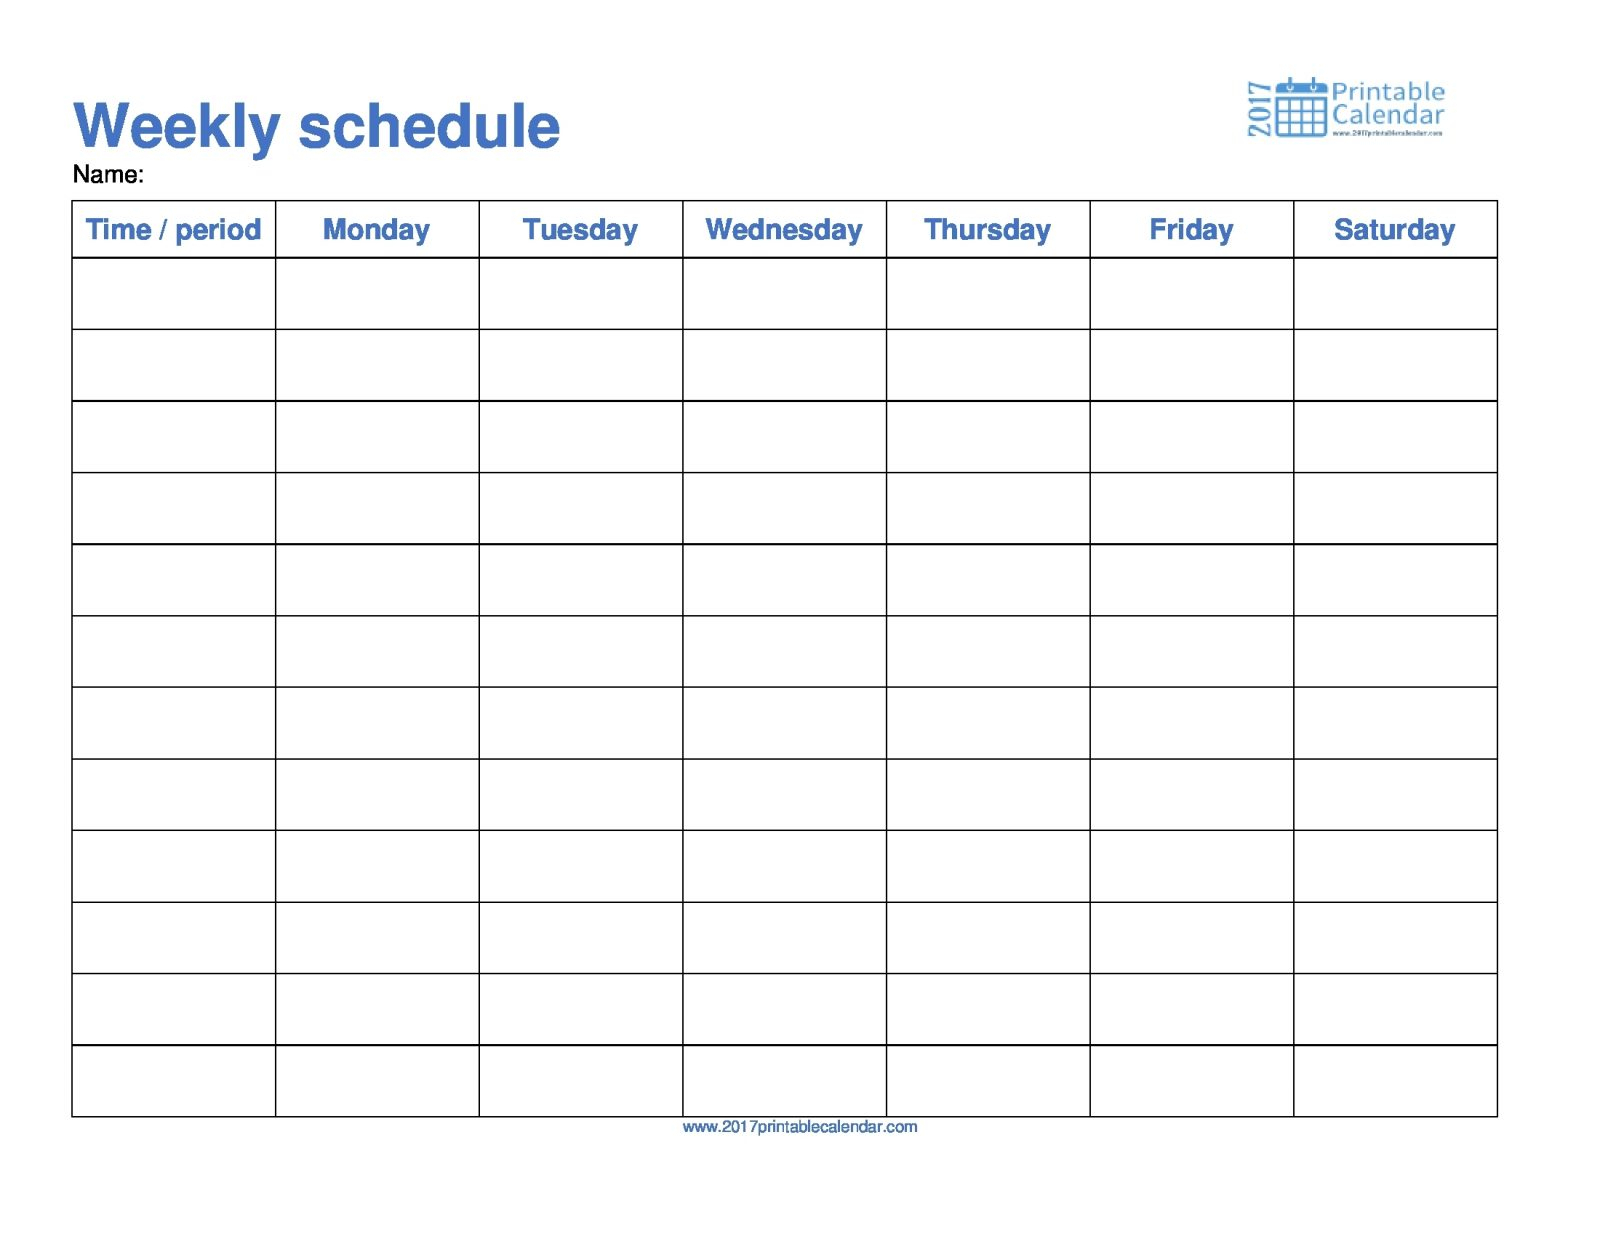 Schedule Template Free Weekly Templates For Word Monday To Sunday within Monday - Sunday Calendar Template